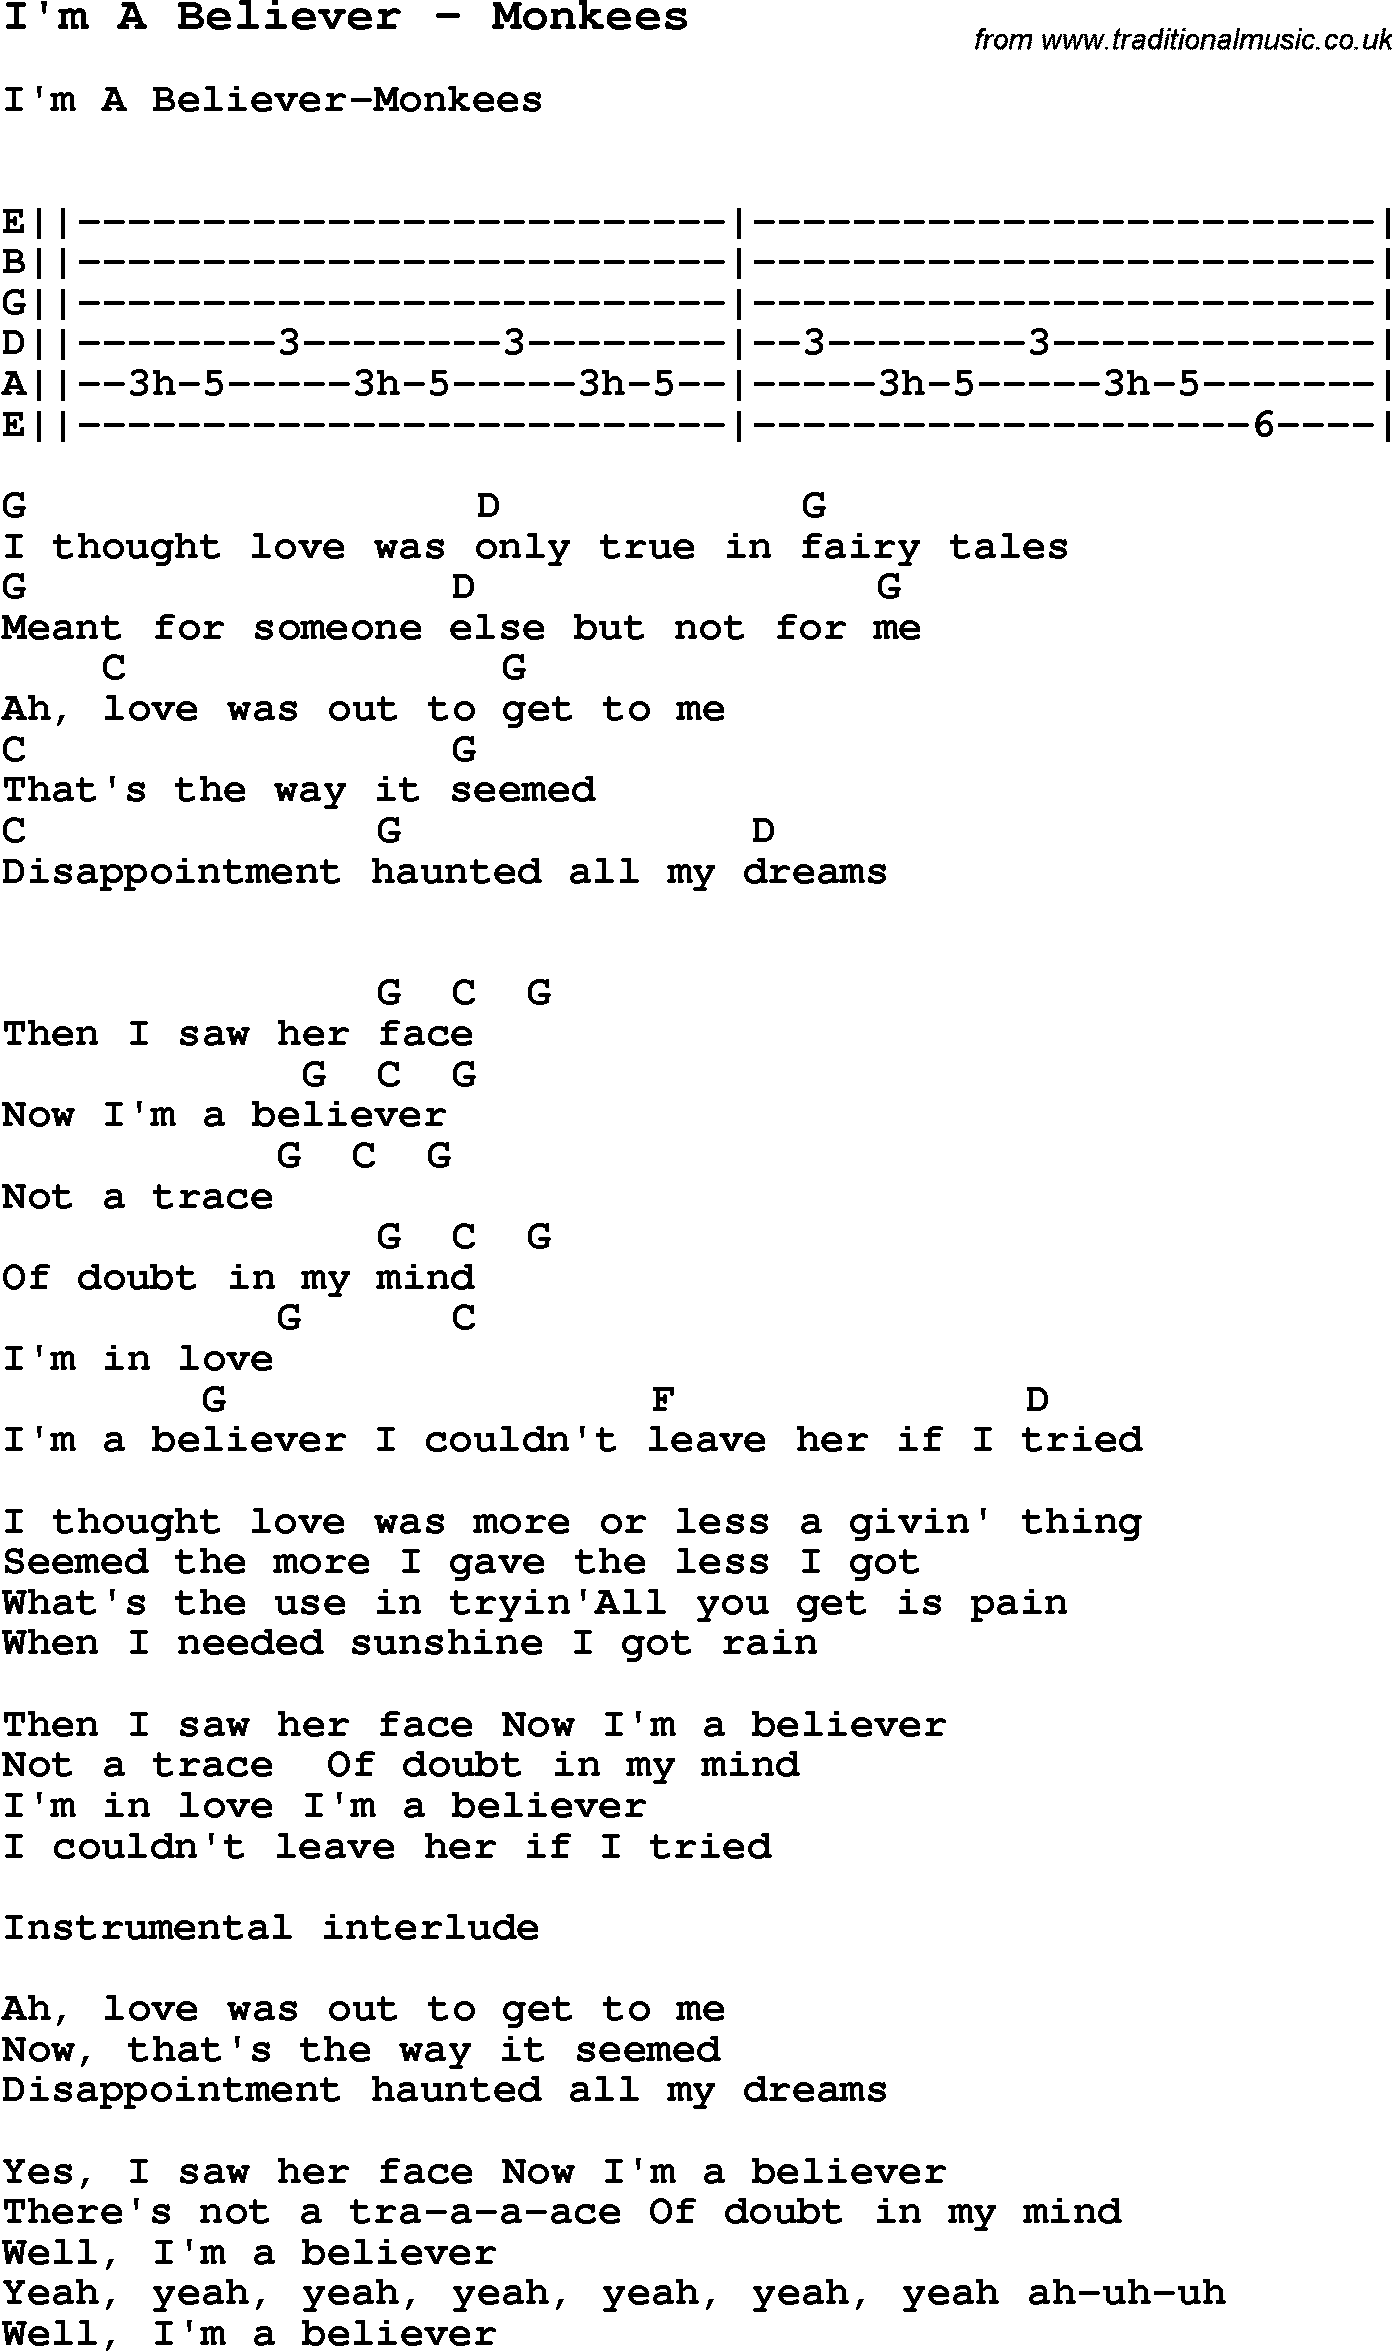 Song Im A Believer By Monkees With Lyrics For Vocal Performance